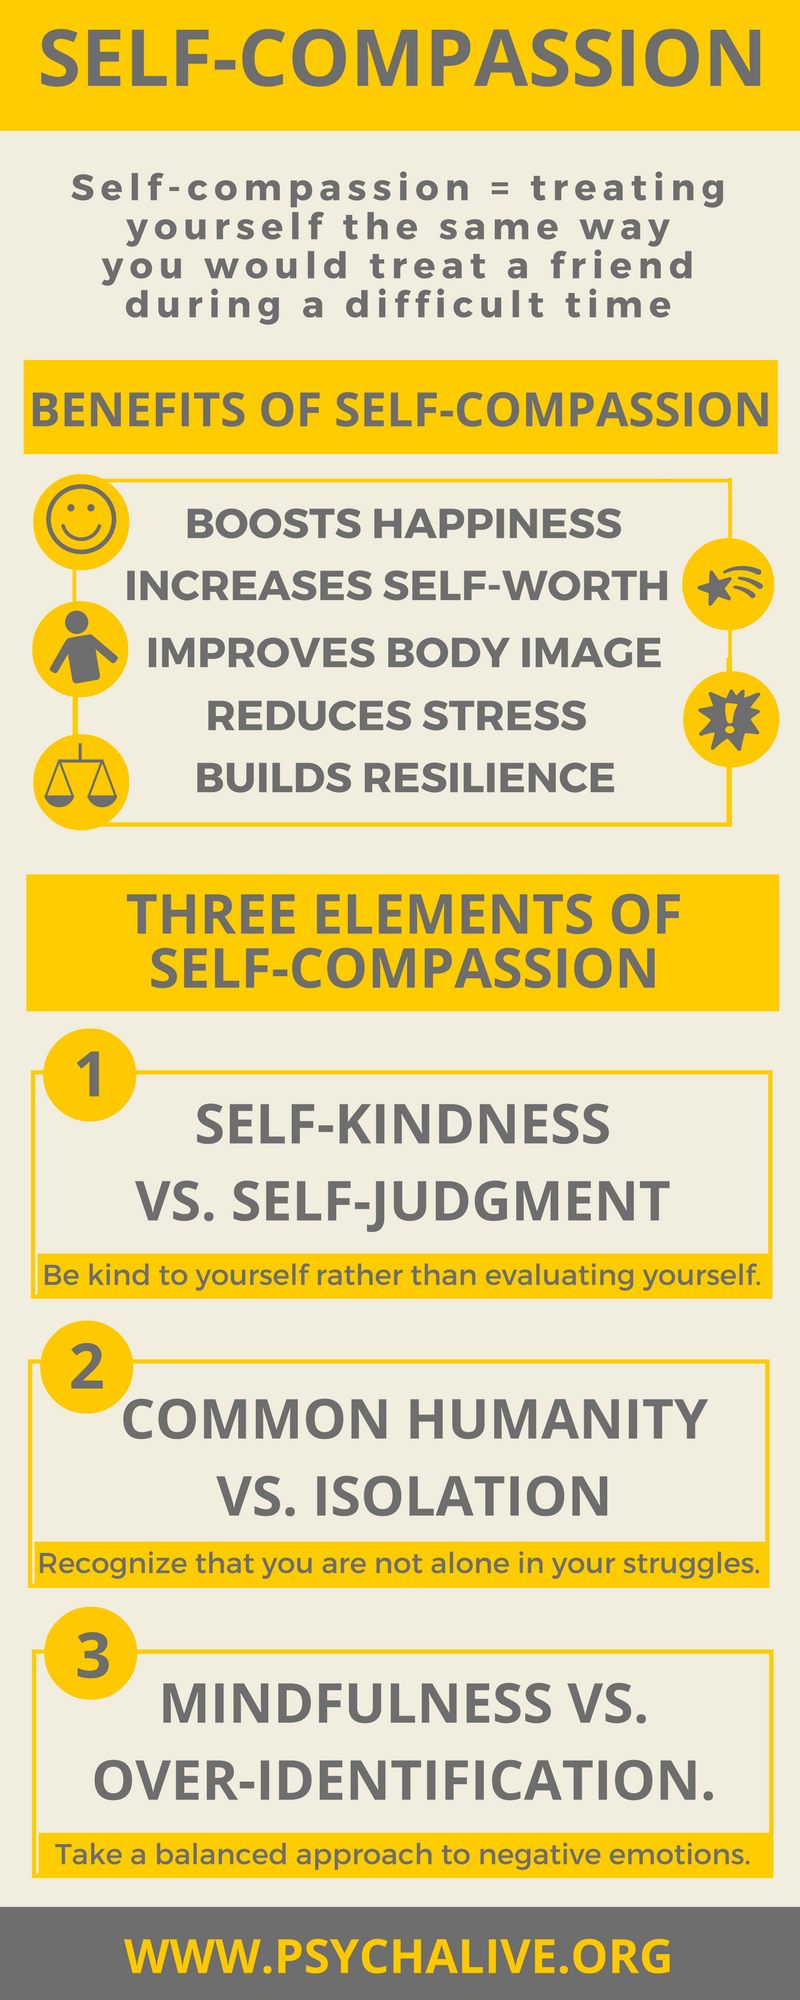 self-compassion infographic